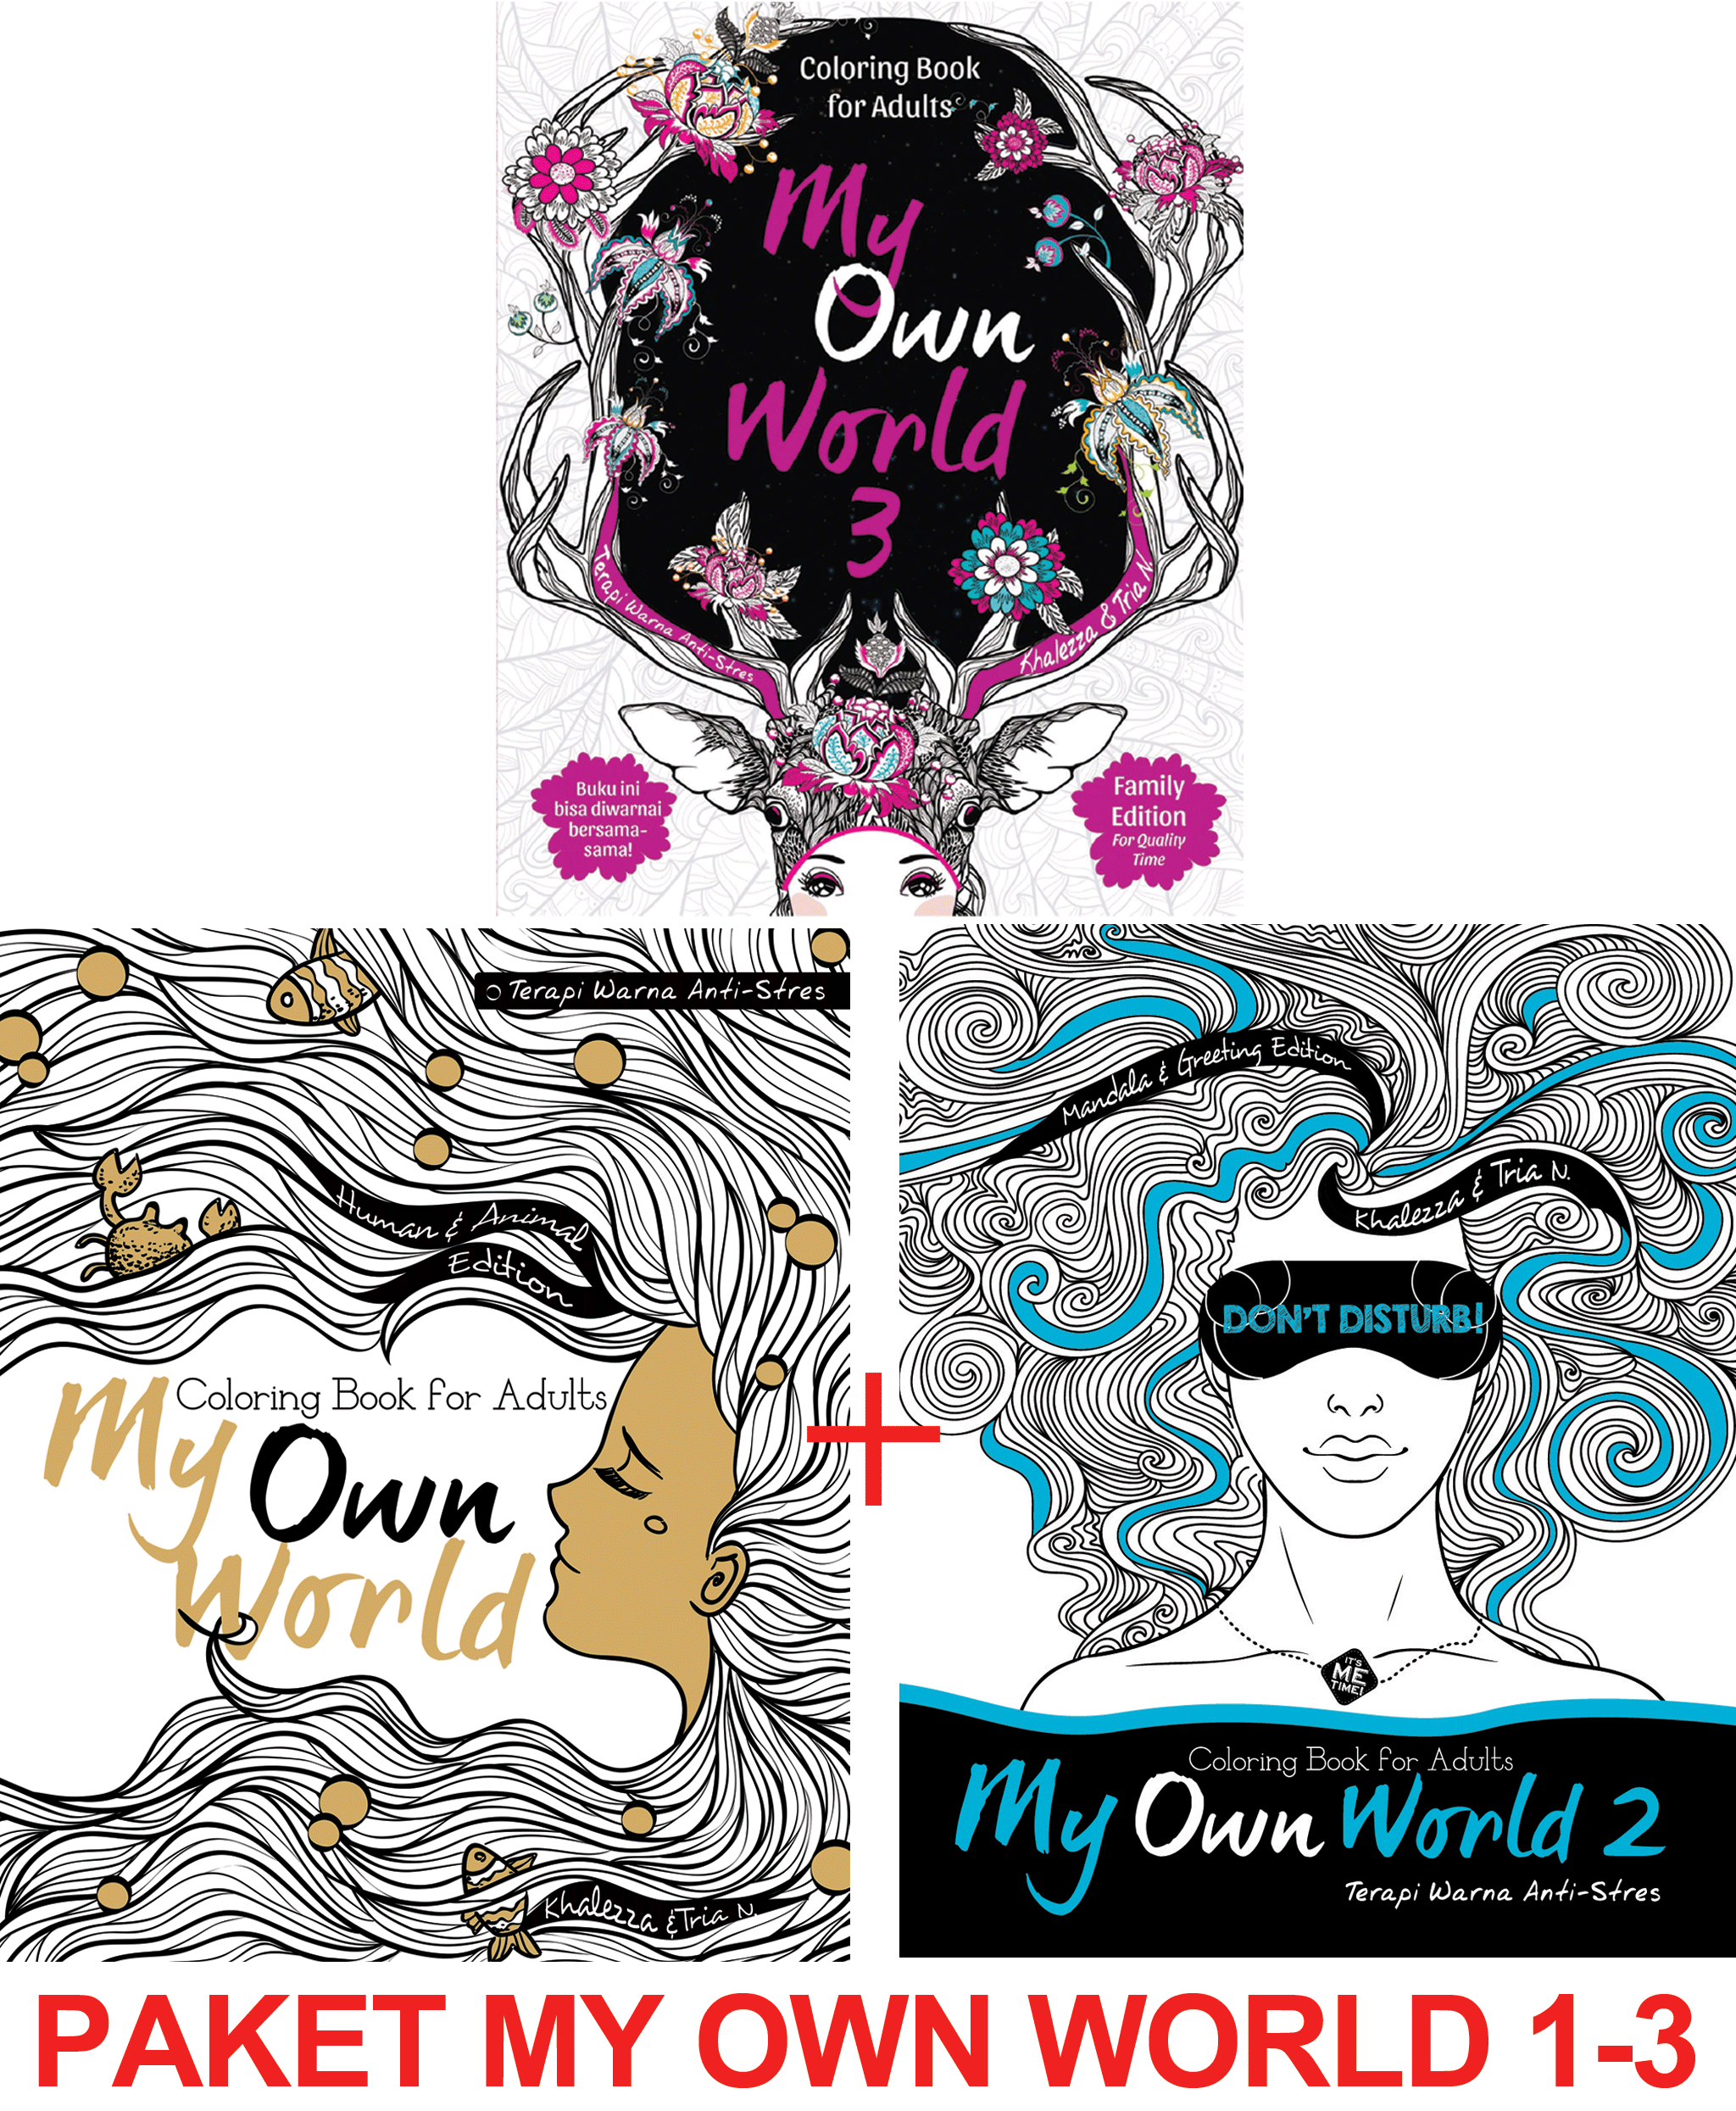 Jual Paket My Own World Coloring Book for Adults Buku mewarnai 1 3 Renebook Turos